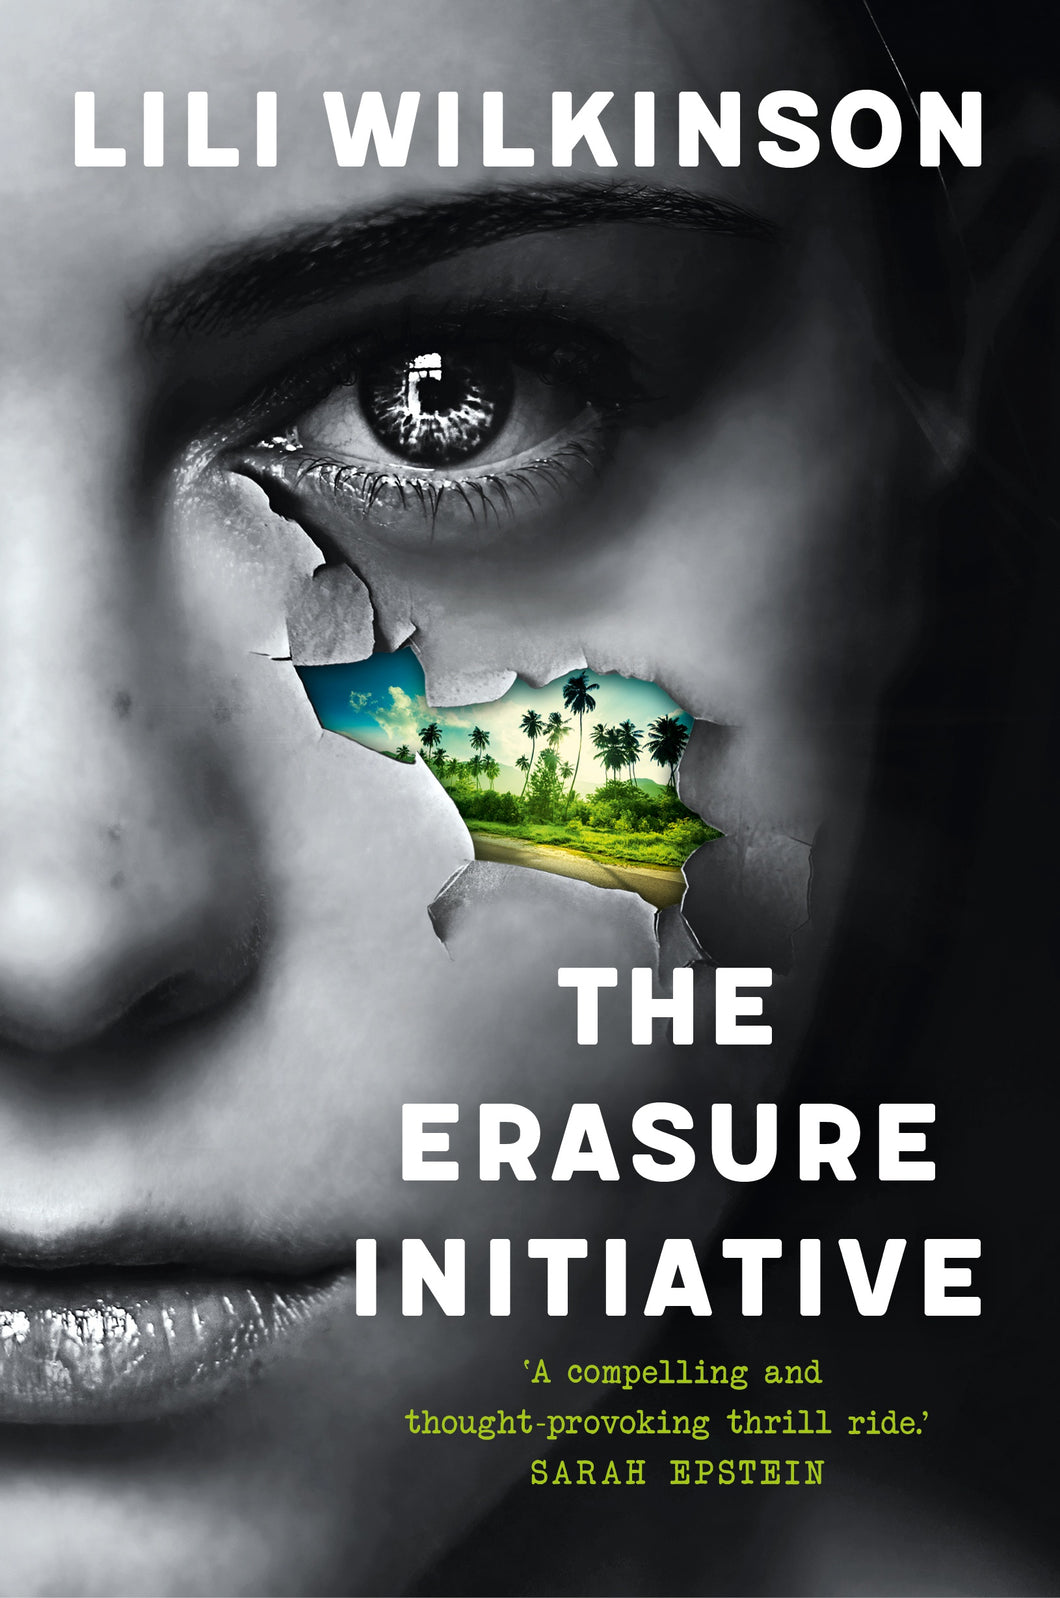 The Erasure Initiative